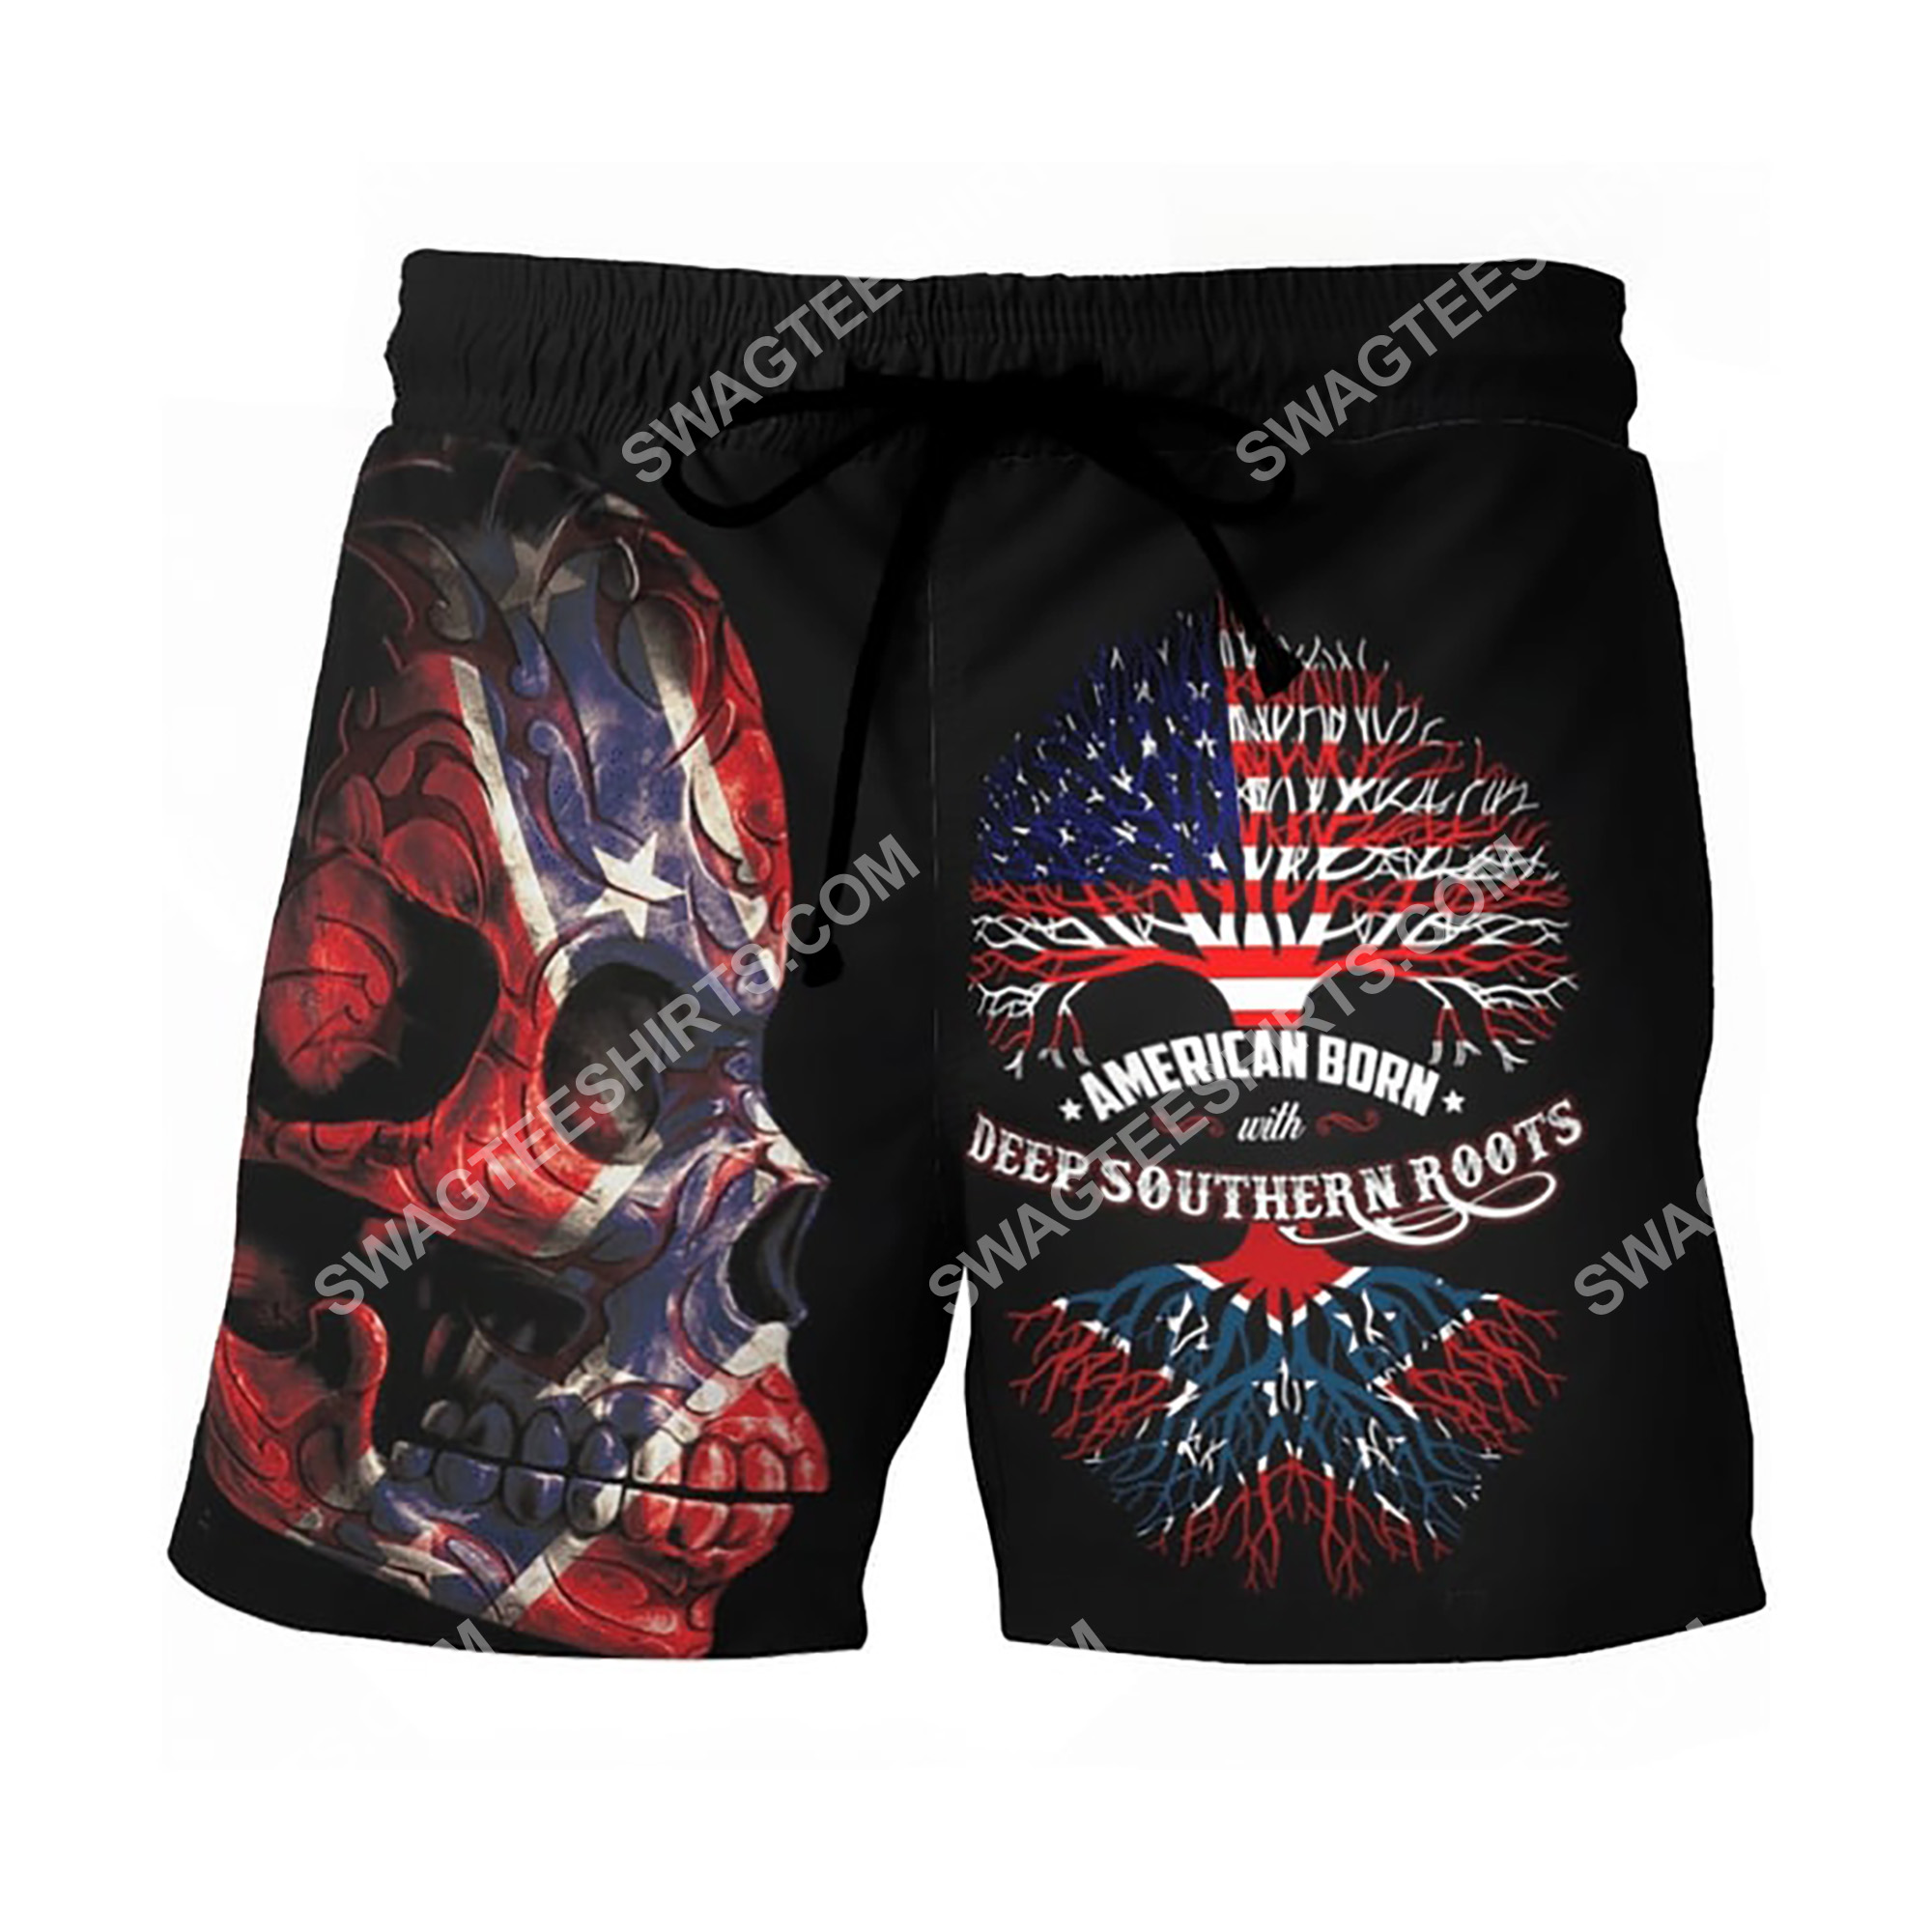 sugar skull american born with deep southern roots beach shorts 2(1)